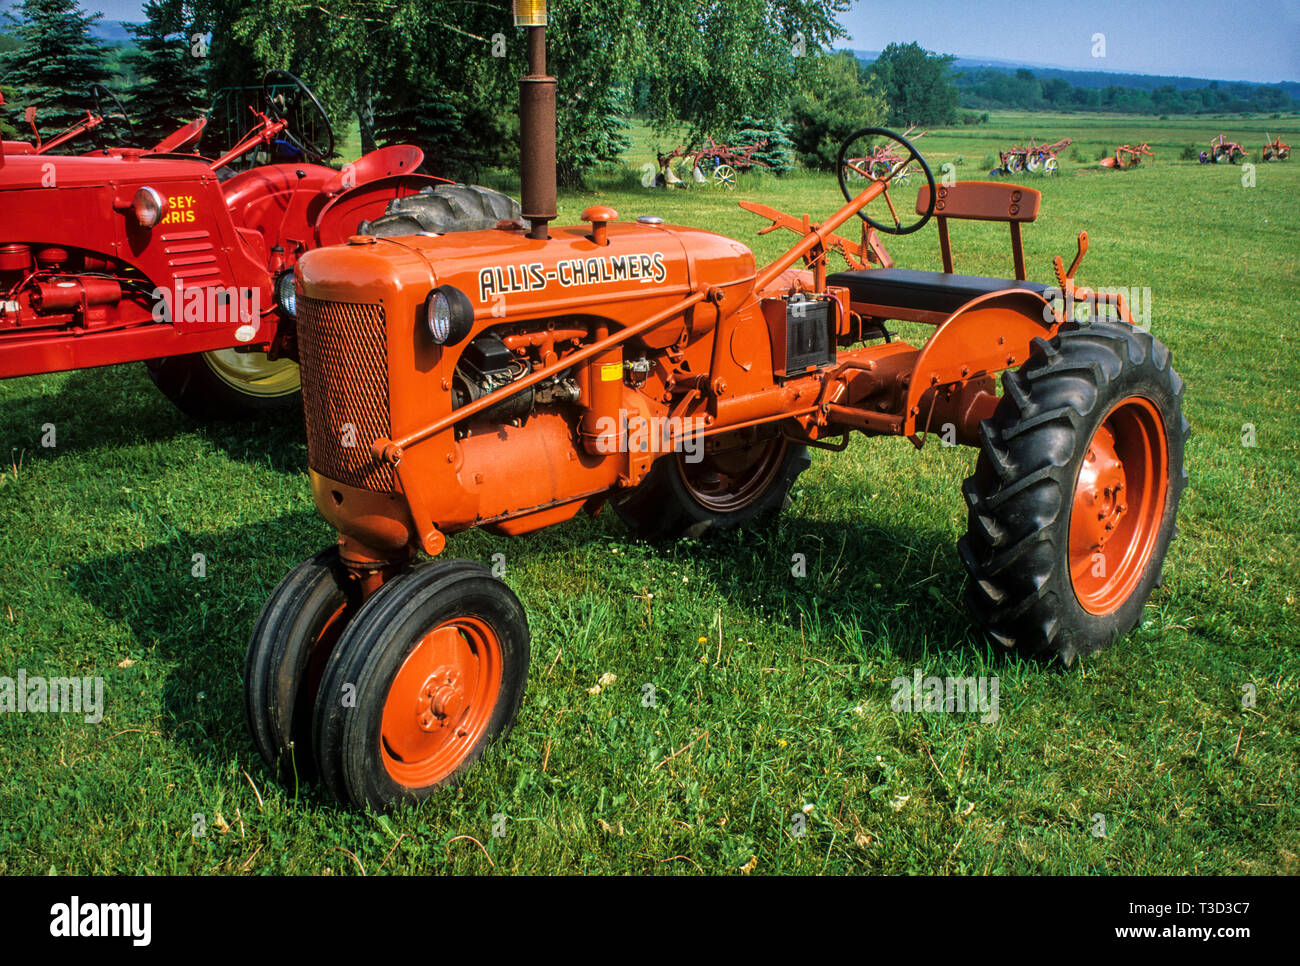 Allis Chalmers Tractor Stock Photos & Allis Chalmers Tractor Stock